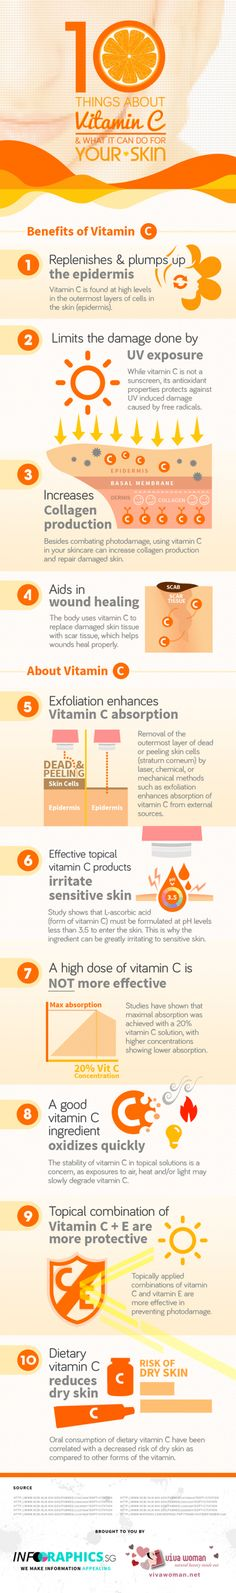 10 Things About Vitamin C – Infographic on http://www.bestinfographic.co.uk